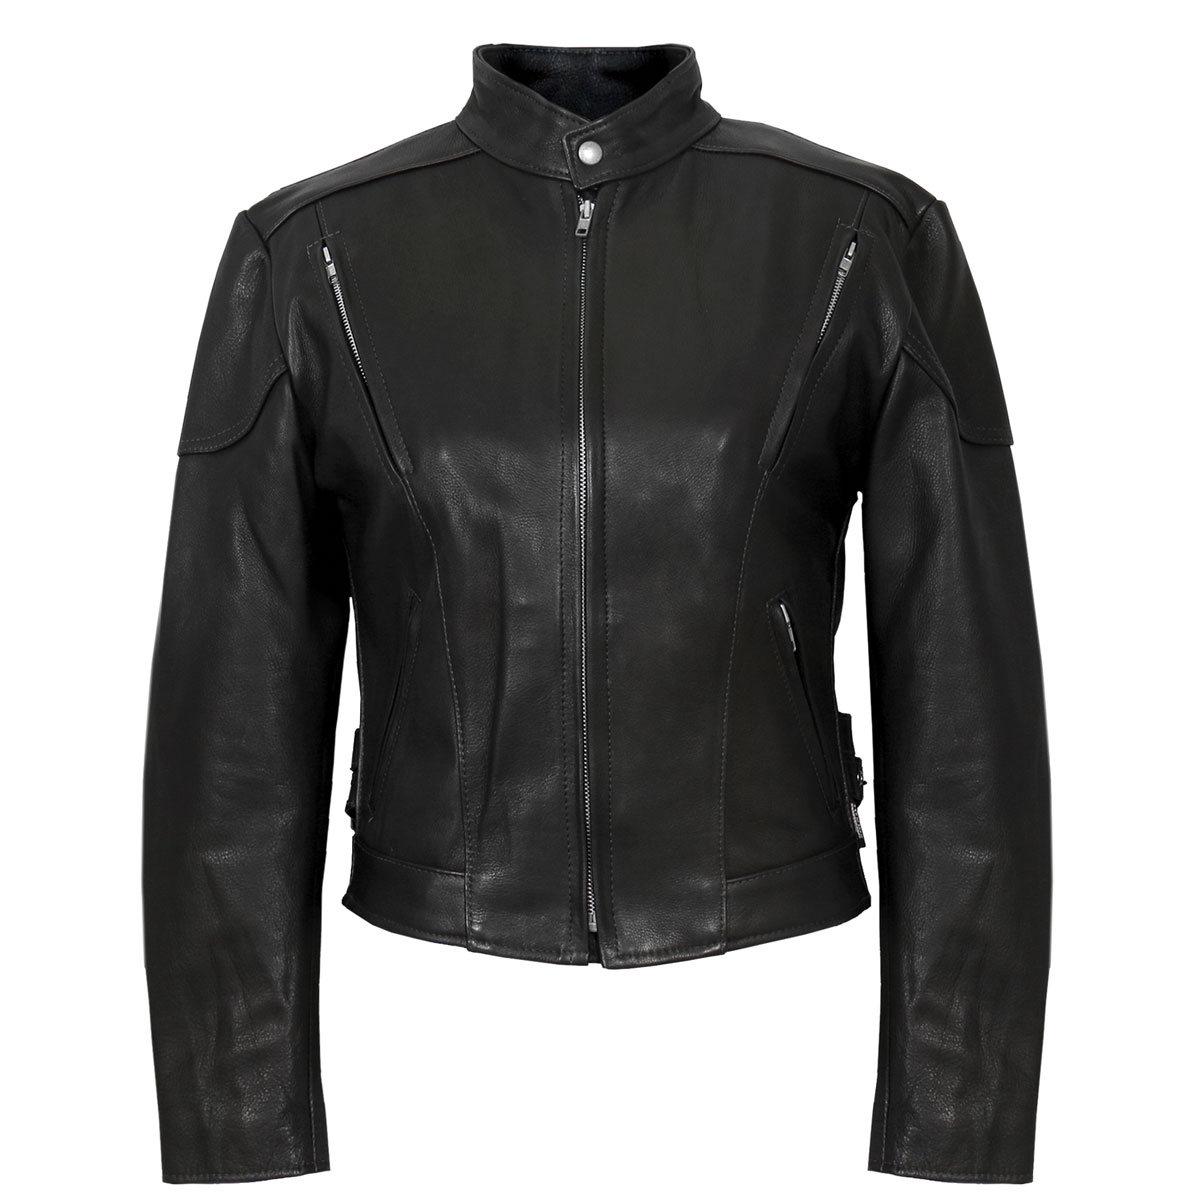 Hot Leathers Women's USA Made Vented Black Leather Jacket